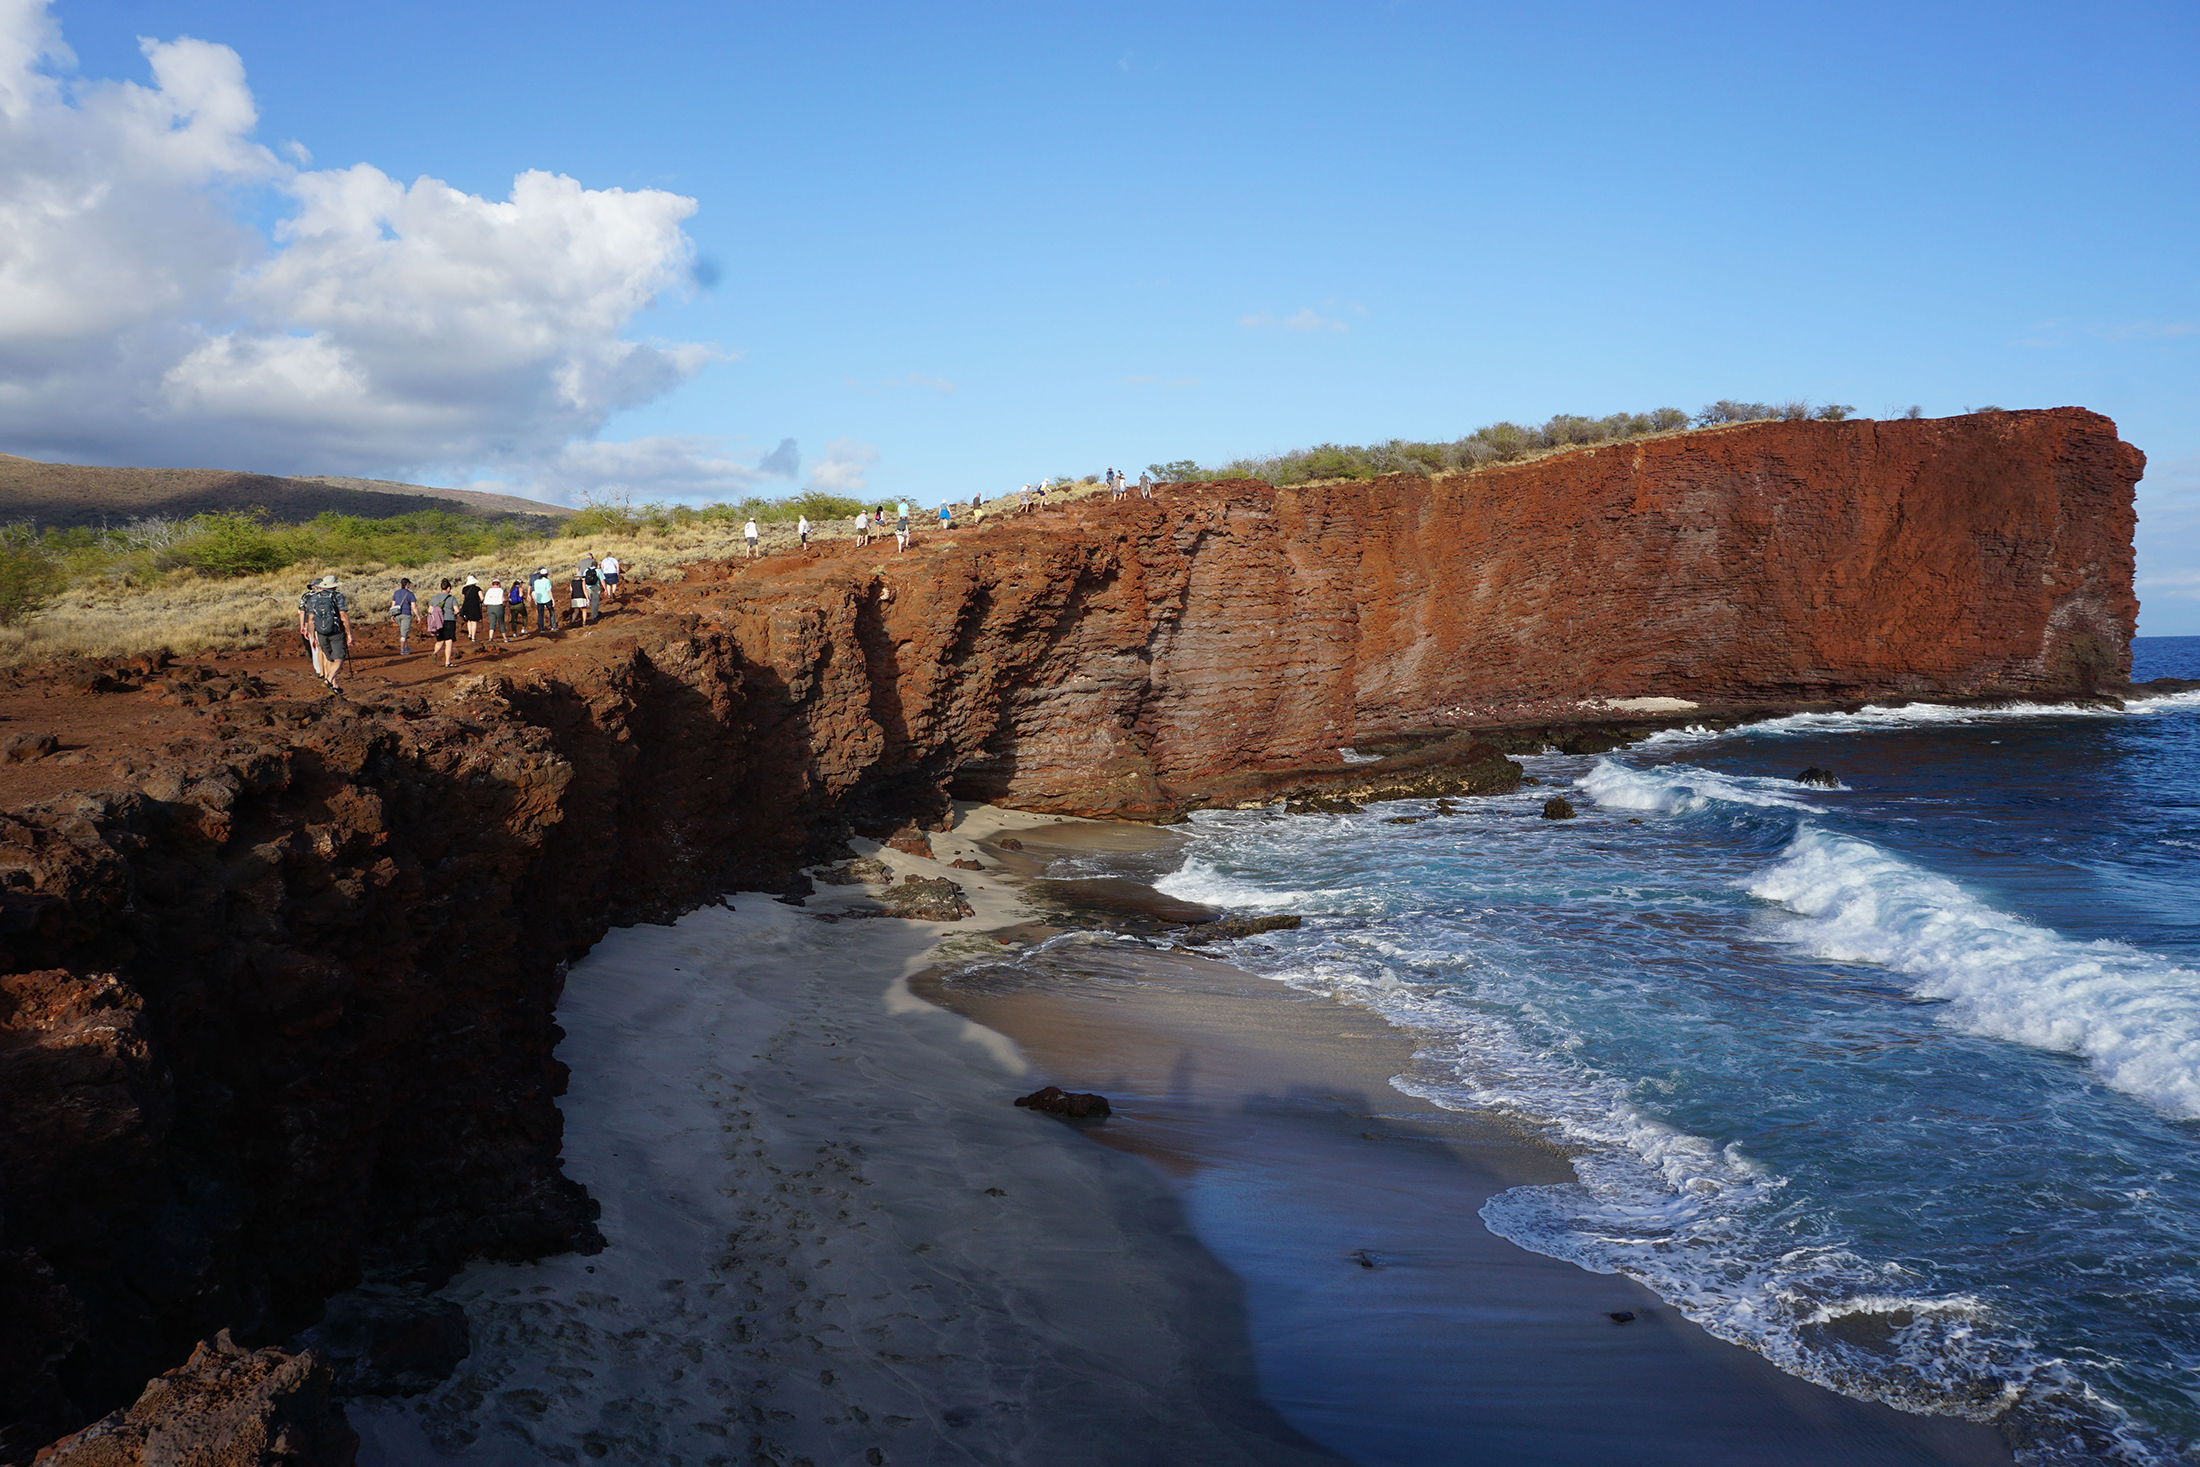 2200x1467-HI-Hike-up-to-Sweetheart-Rock-Lanai.jpg